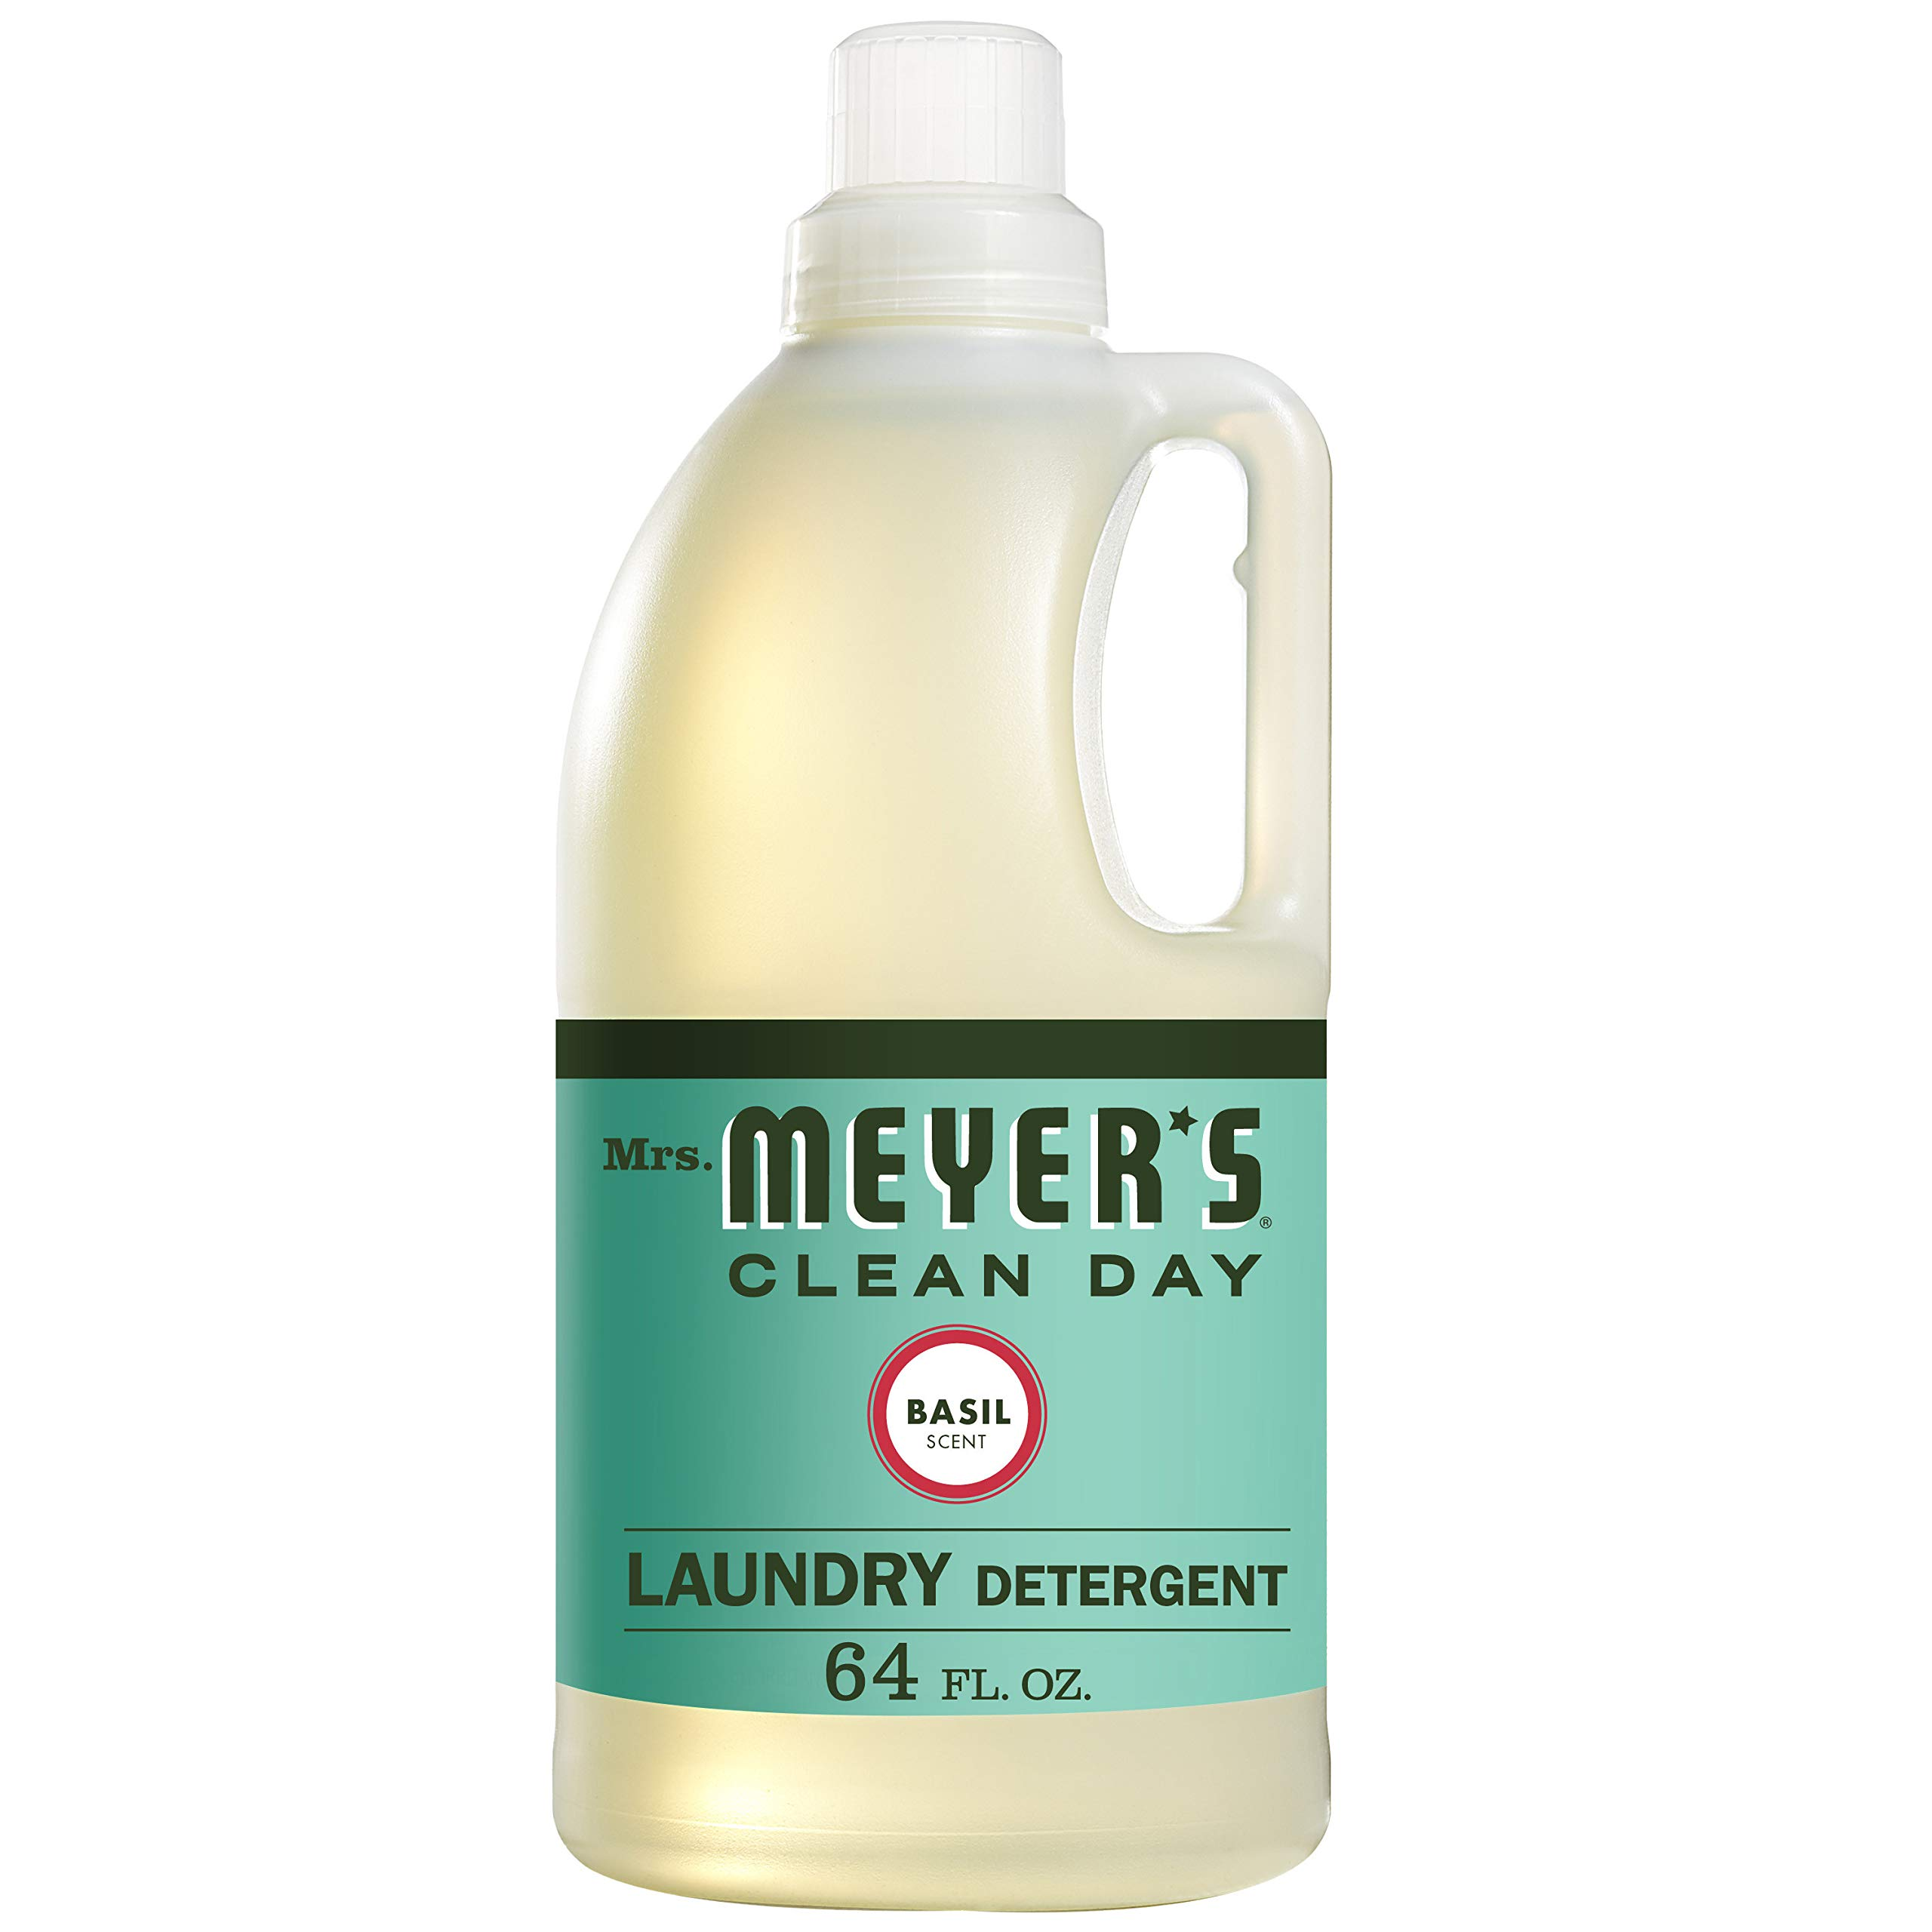 Mrs. Meyer's Laundry Detergent, Basil, 64 fl oz by Mrs. Meyer's Clean Day